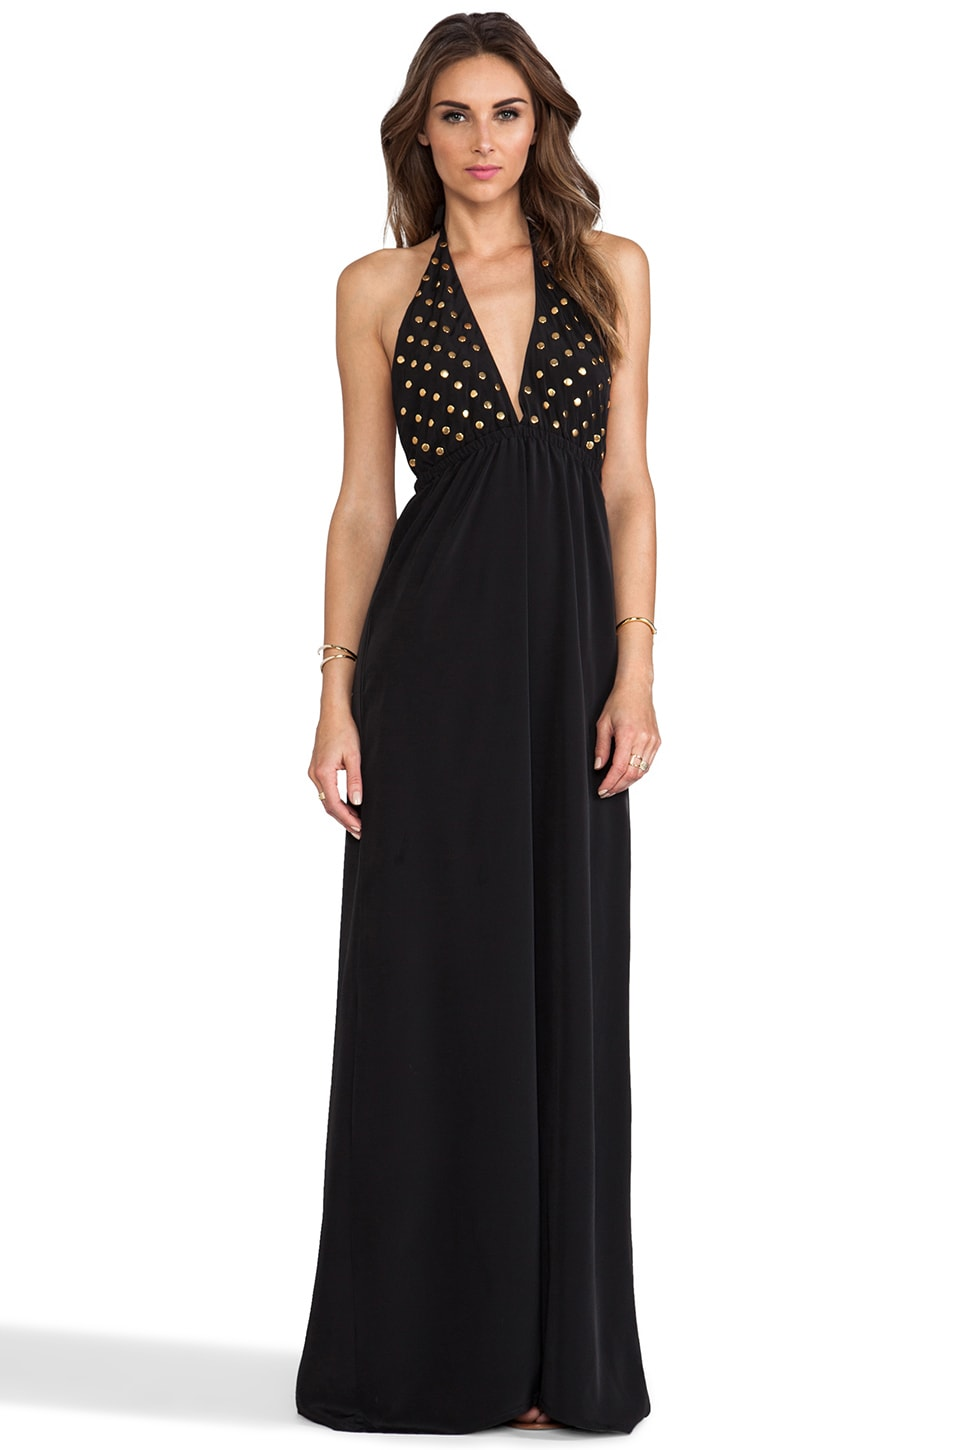 Lovers + Friends for REVOLVE Jasmine Studded Maxi Dress in Black